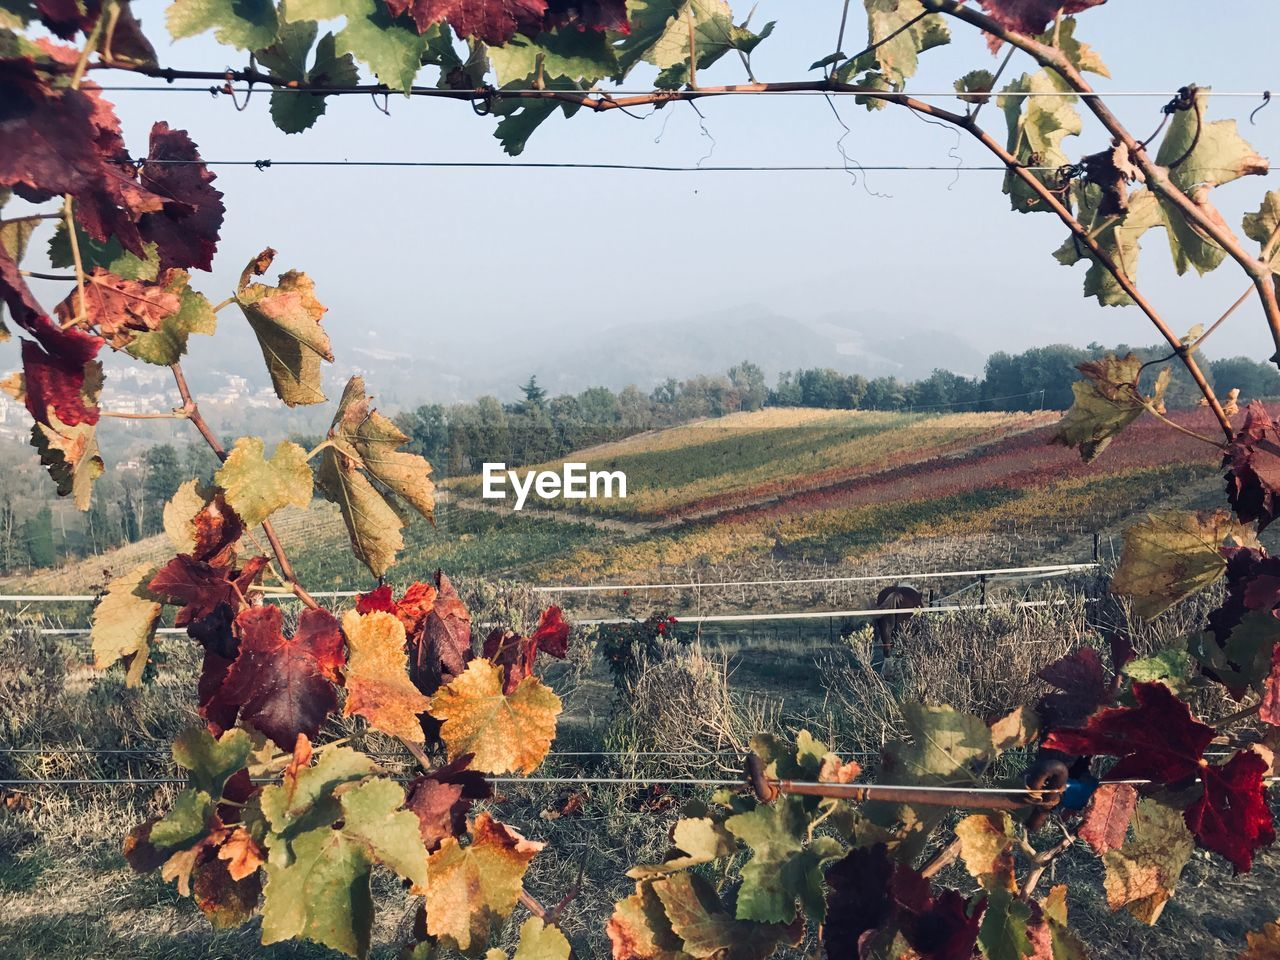 plant, landscape, nature, beauty in nature, mountain, leaf, environment, sky, day, tree, plant part, autumn, rural scene, tranquility, agriculture, scenics - nature, growth, vineyard, land, tranquil scene, no people, mountain range, outdoors, change, winemaking